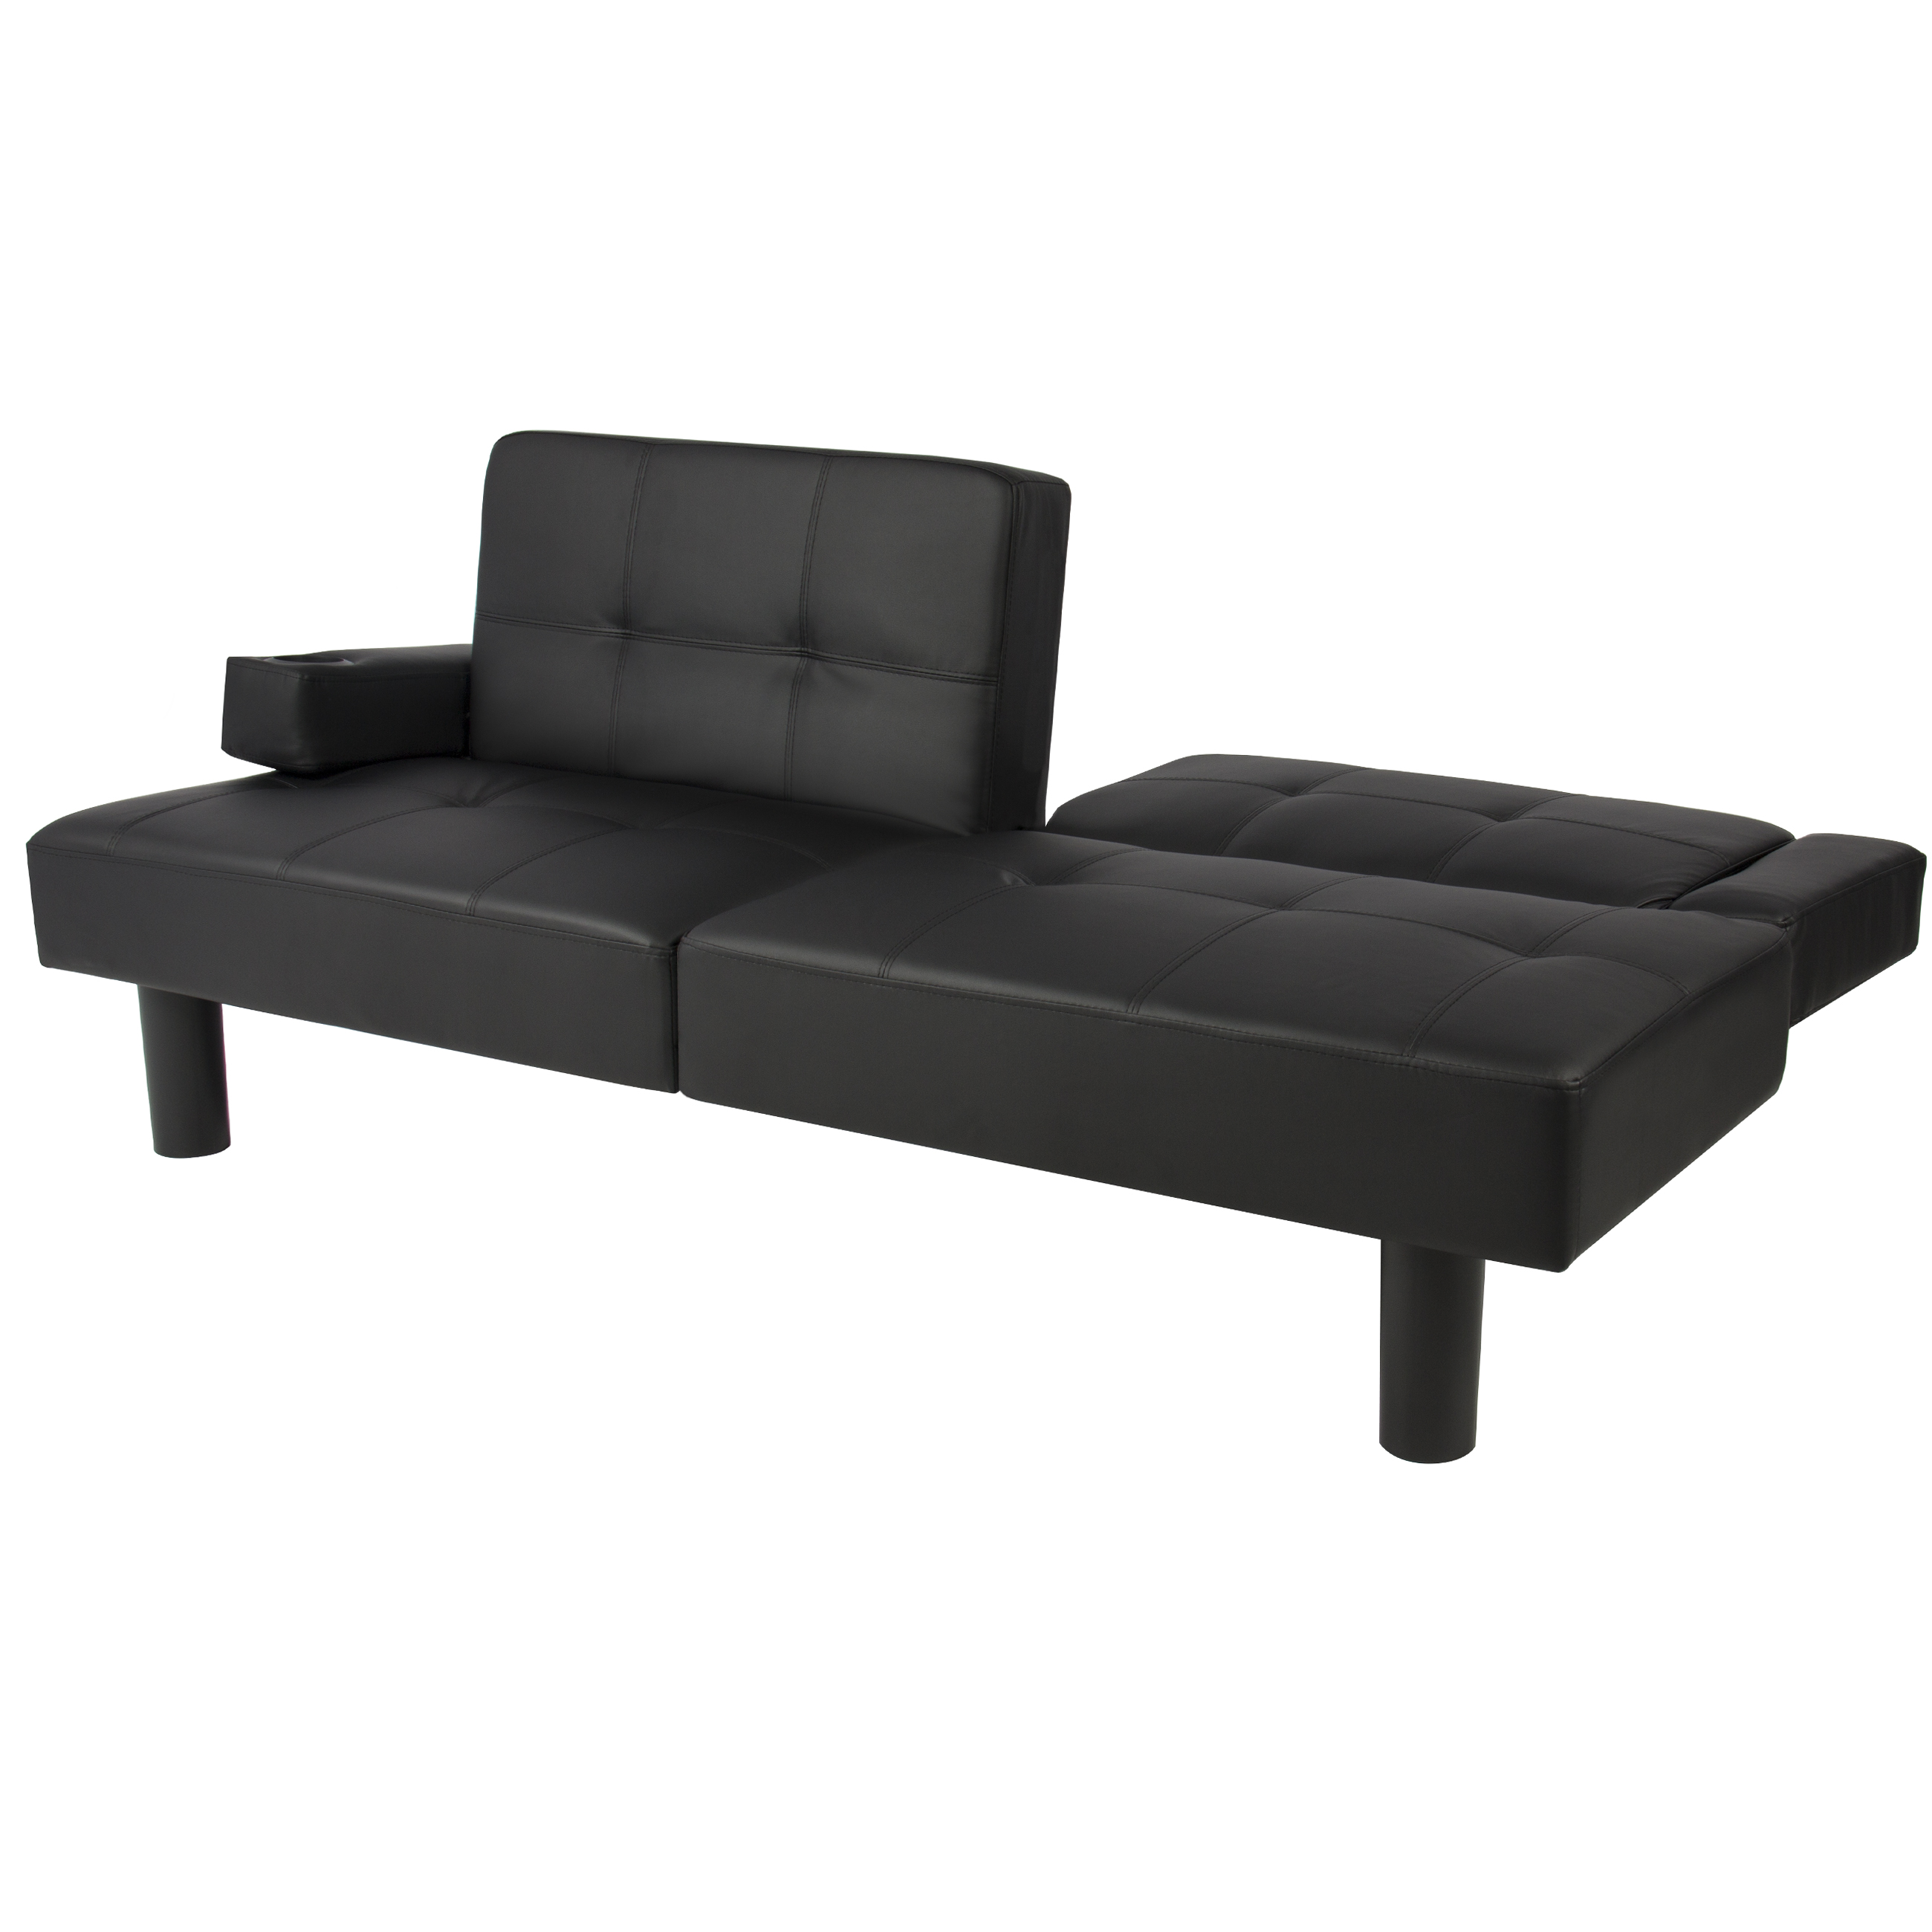 beds compact sofa start double cheap futon starta